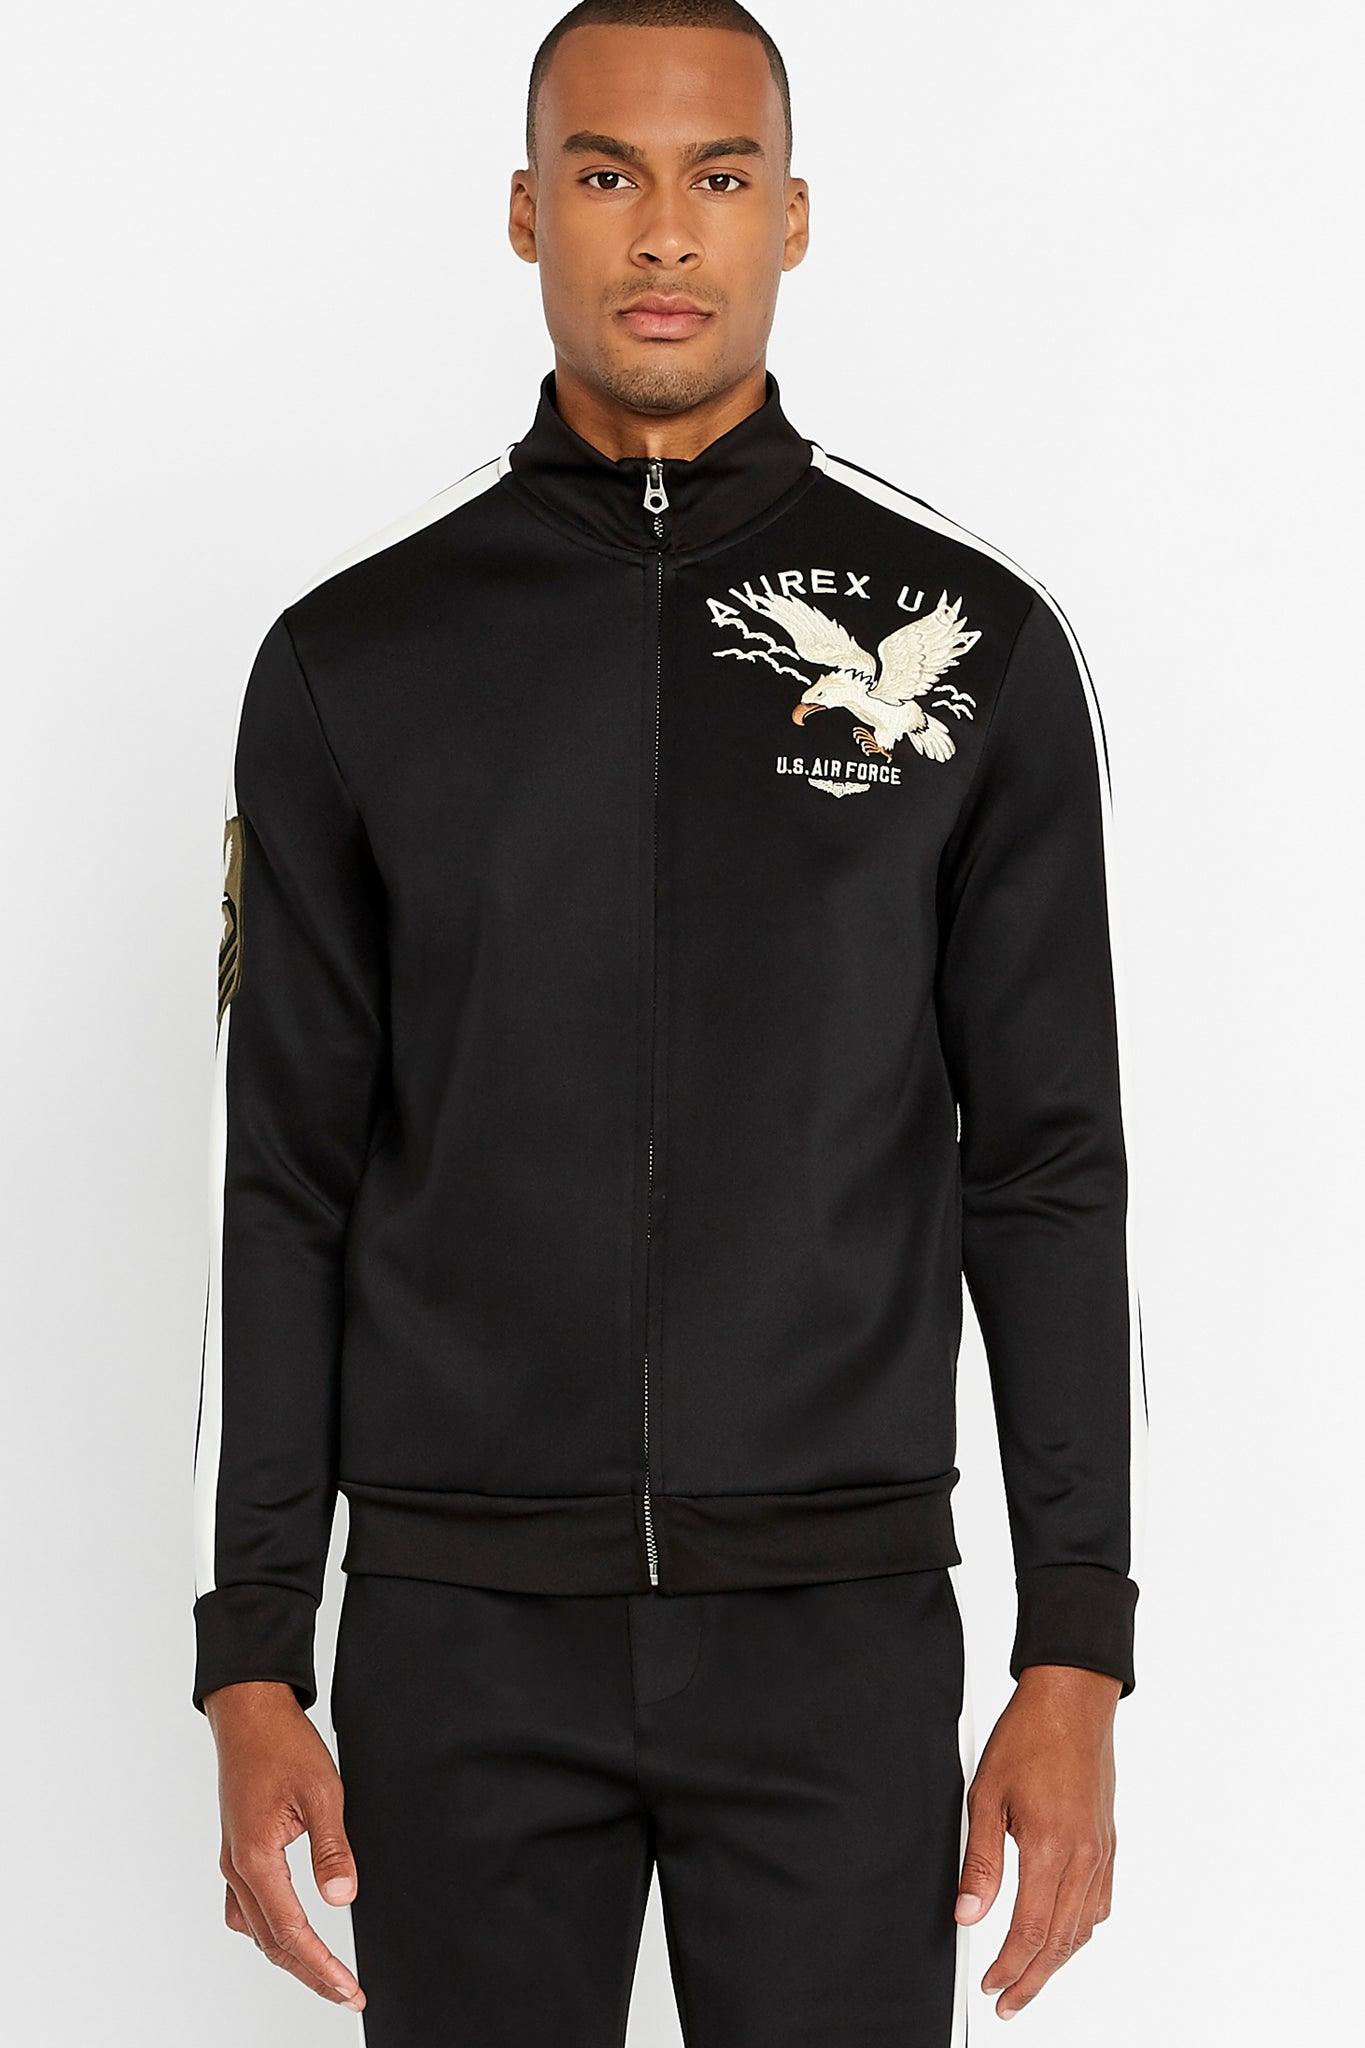 Front view of men wearing a fully zipped black jet track jacket with eagle embroidery on the chest